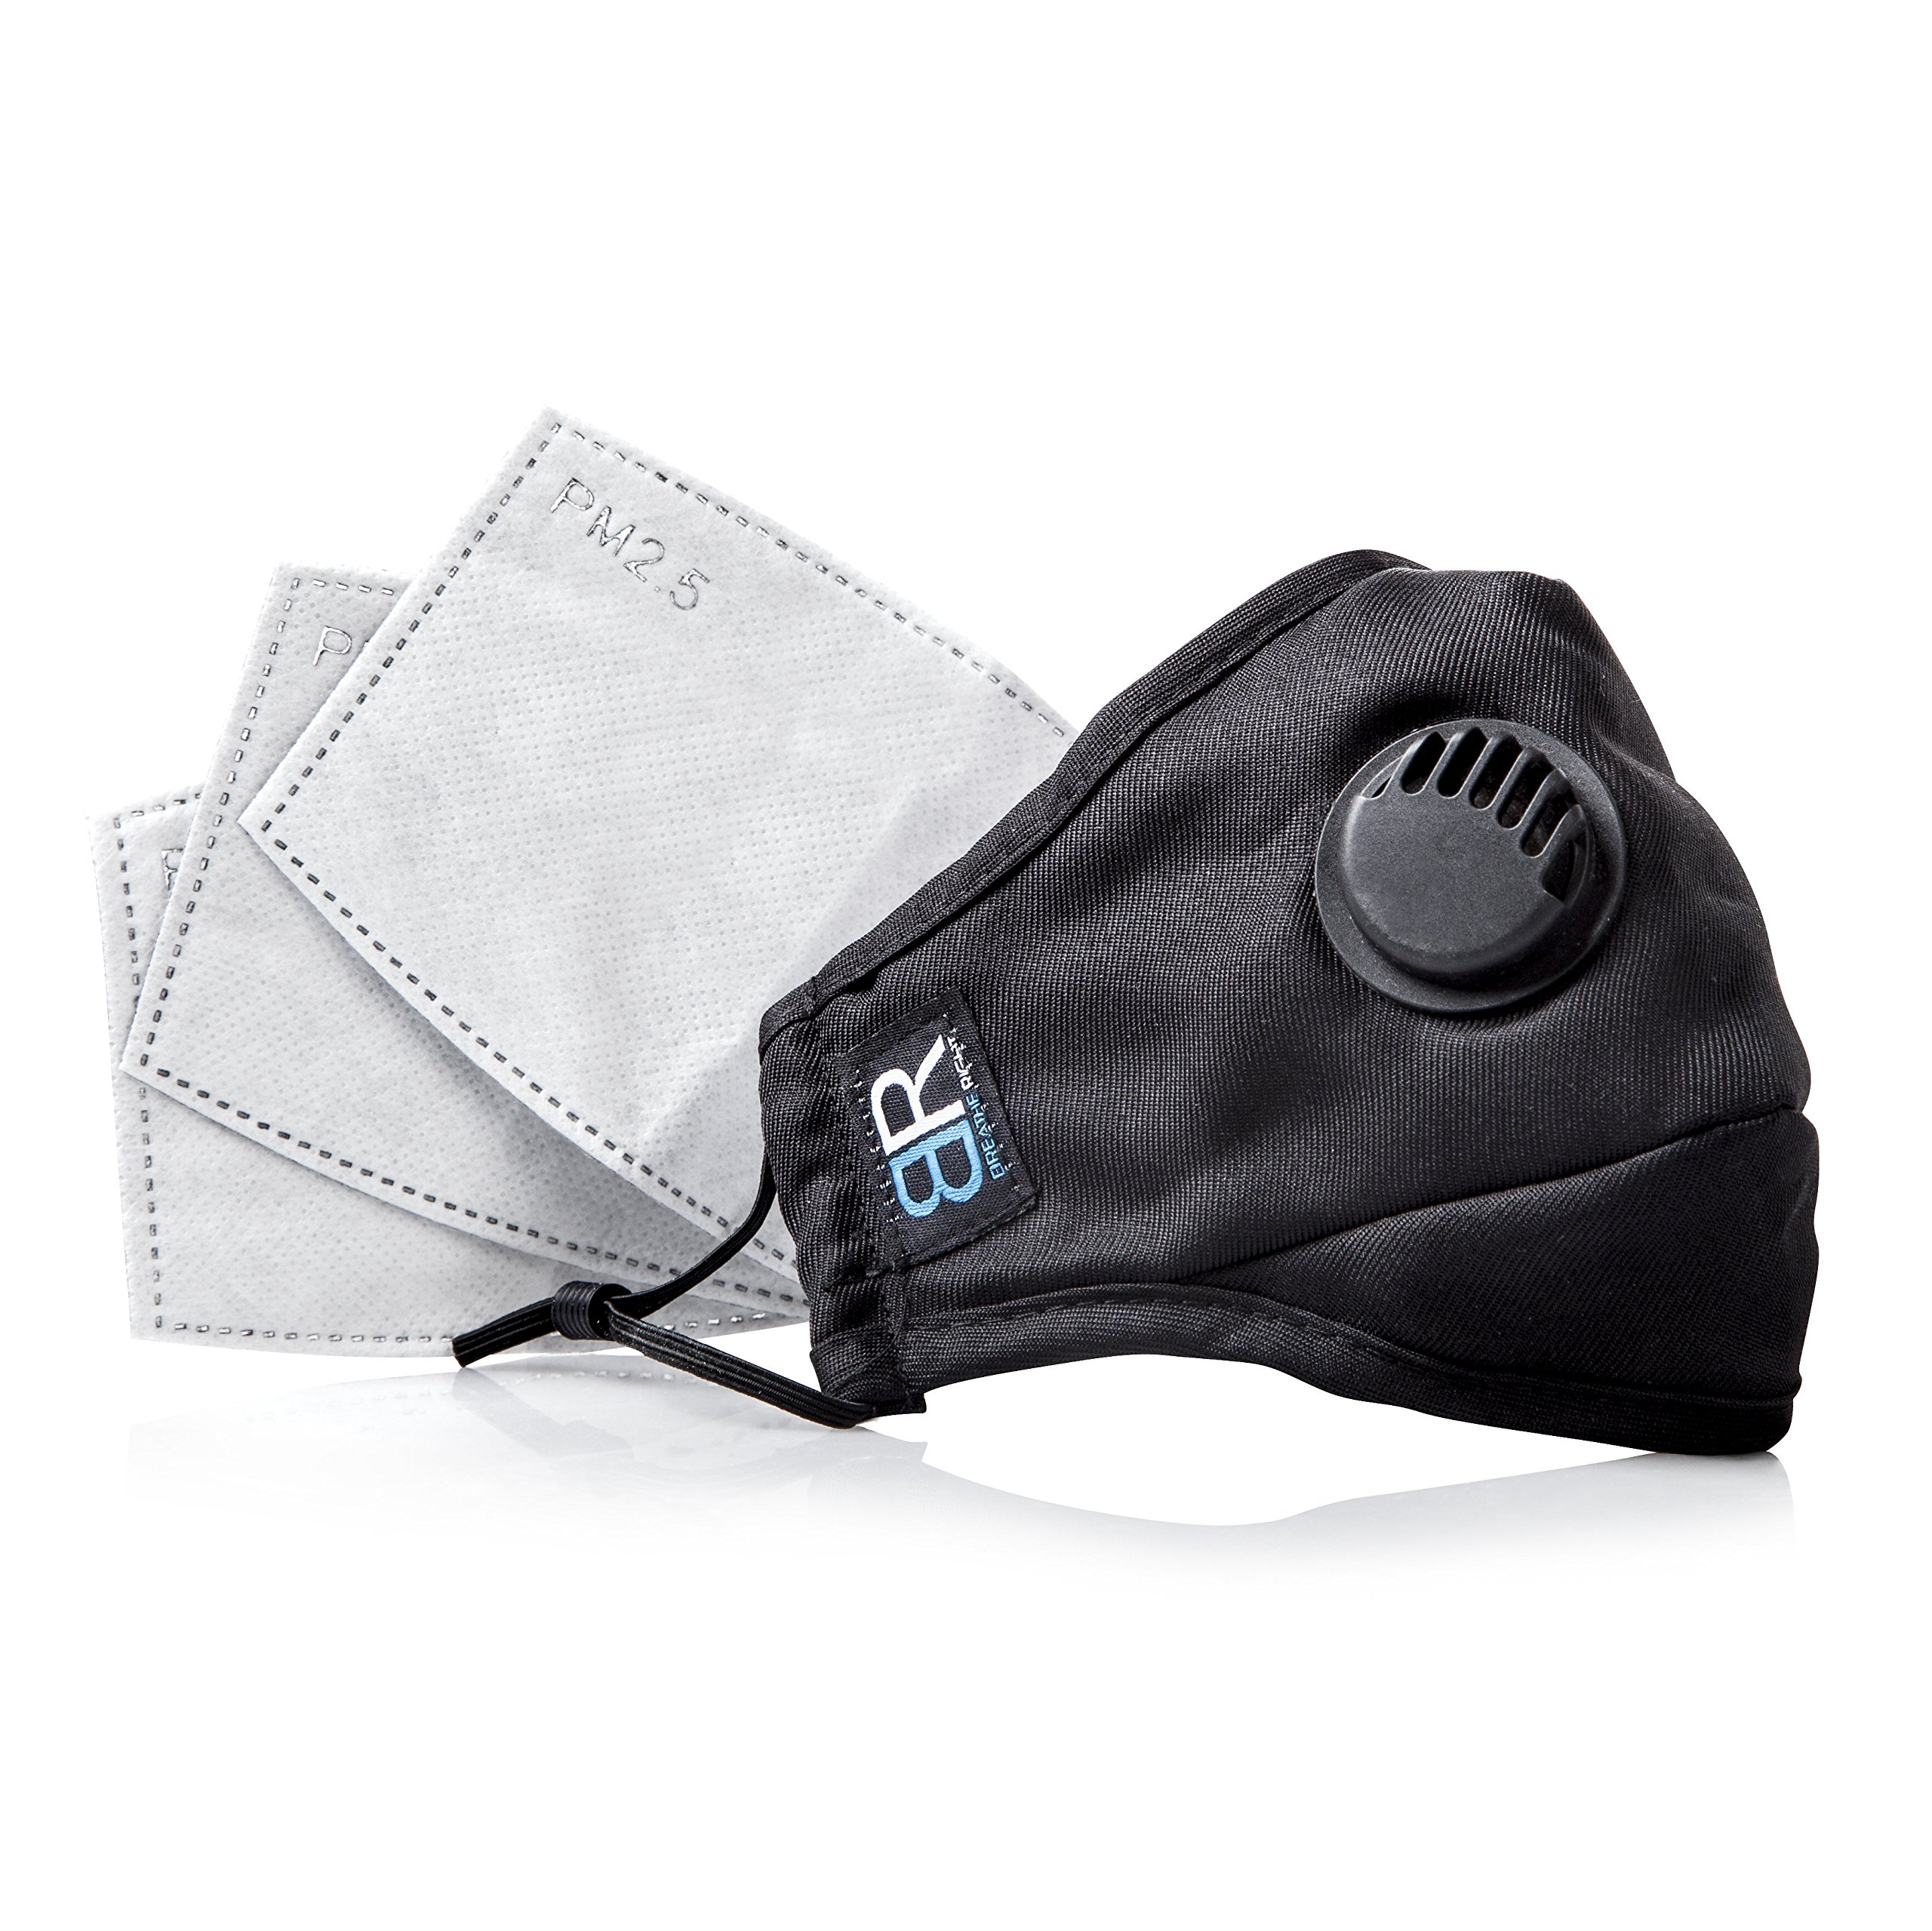 Dust Respirator N95 Breathing Pollution Mask For Men & Women Allergy Air Filter - Breathe Right Air Pollution Travel Mask Washable with 3 Activated Carbon Replacement Filters